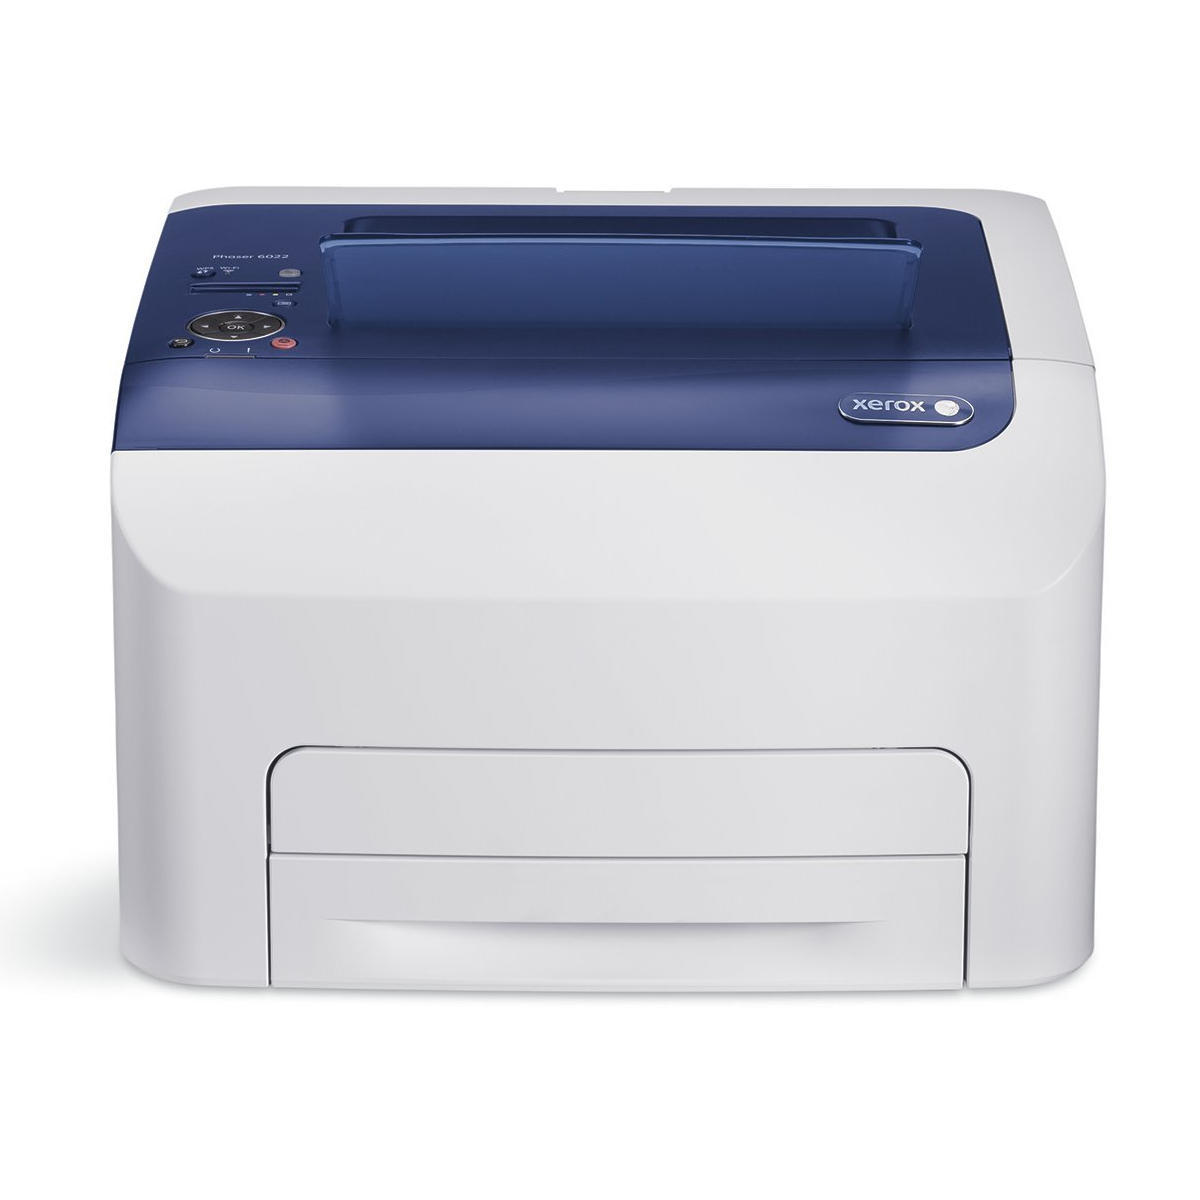 Xerox Phaser 6022/NI Single Function Colour Laser Printer (Phaser 6022)